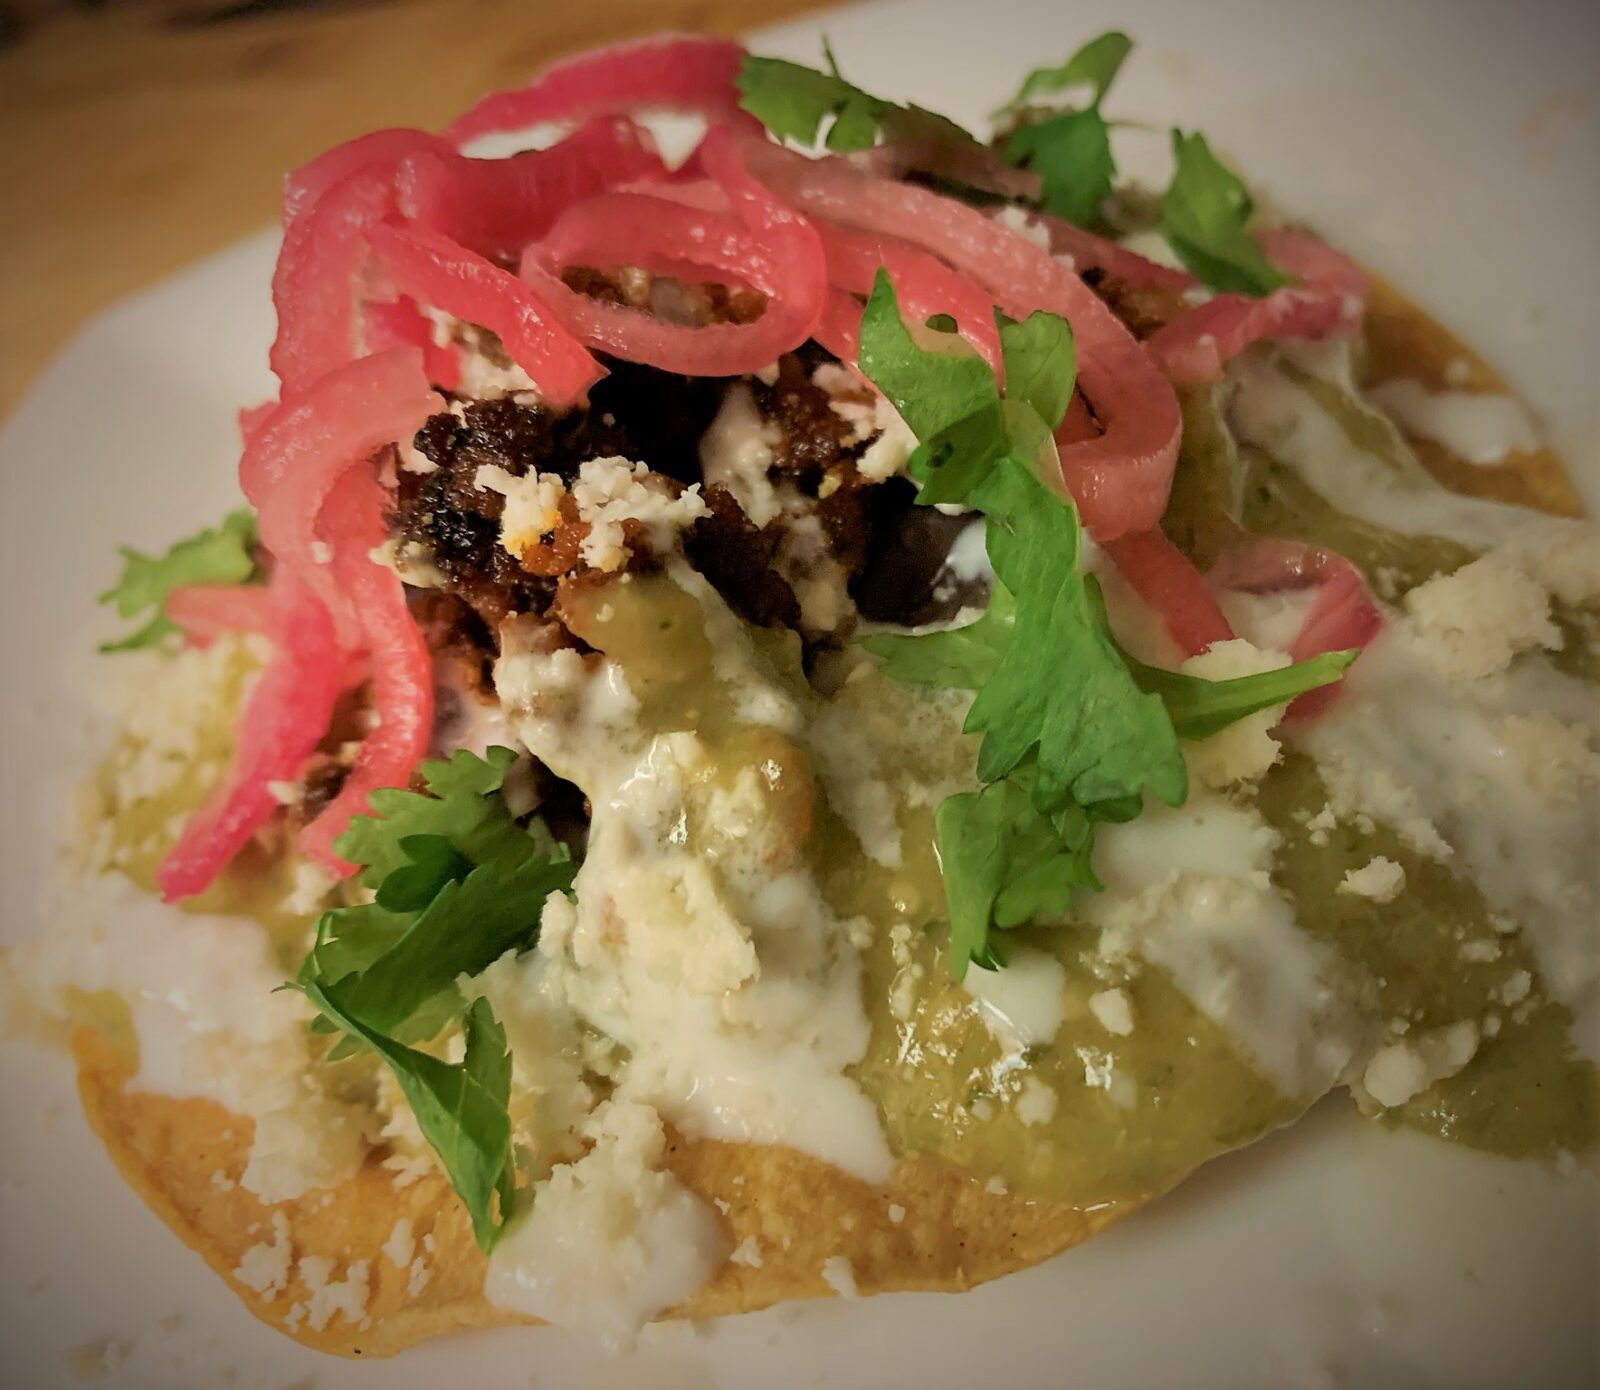 Our plated Tostada de Chorizo from Las Posadas Holiday Kitchen